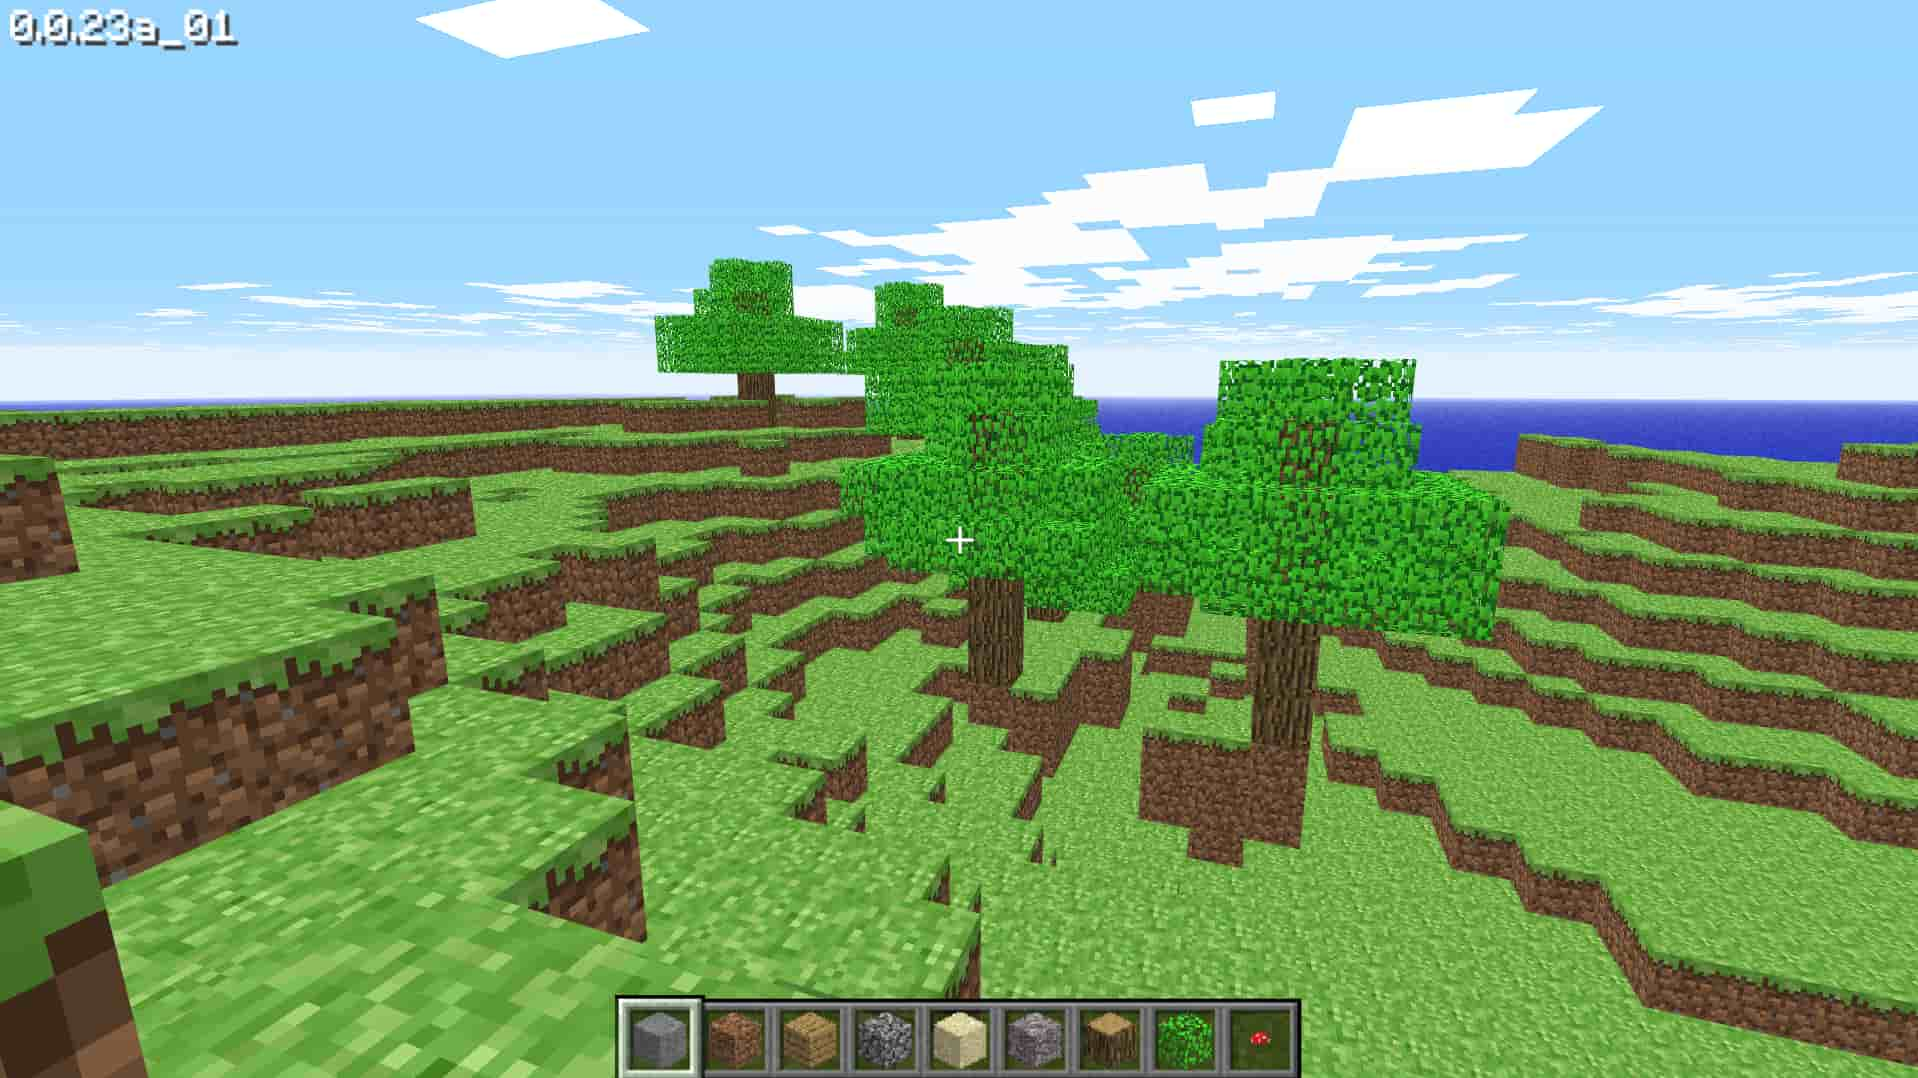 play classic minecraft in browser